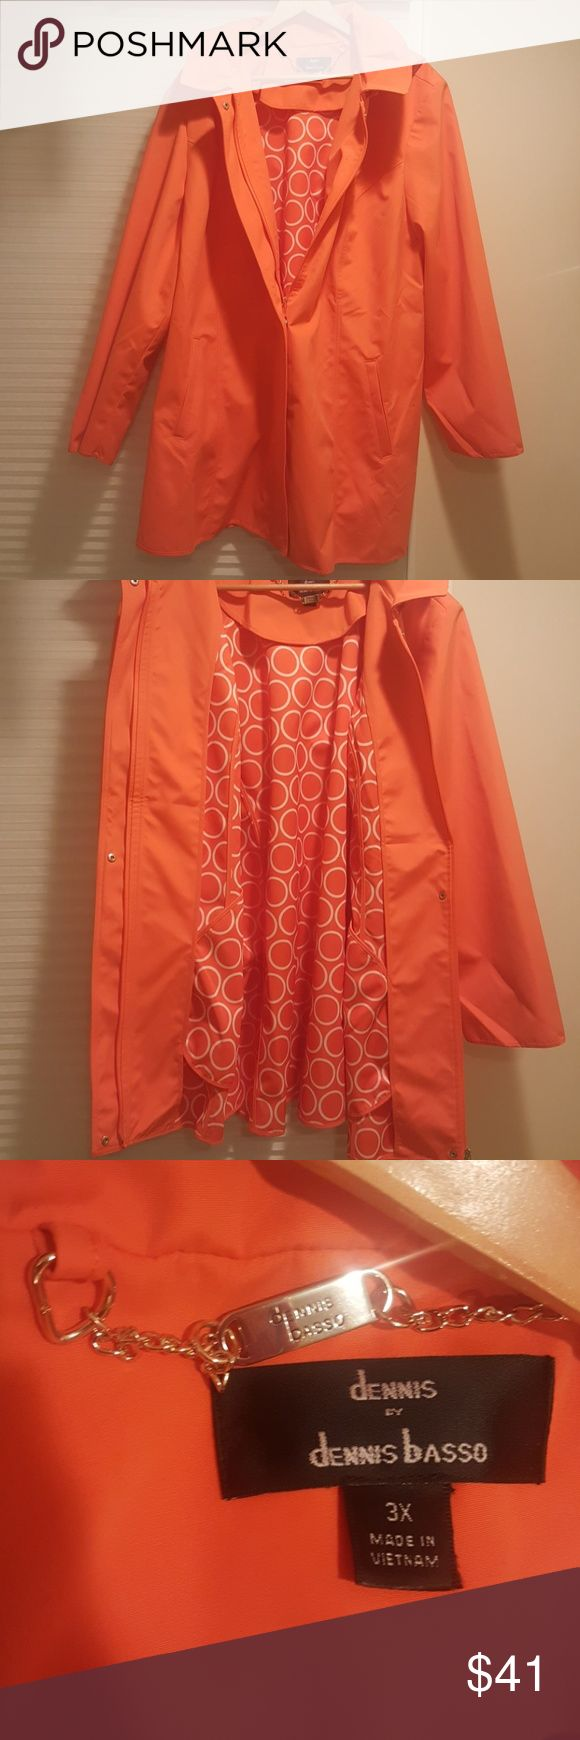 Orange/white retro raincoat This raincoat is new without tags, and its part of a designers sample collection.  Its got a zip up and snap front, two large outer pockets, and a hood that unzips and is removable.  This raincoat is chic and trendy and super functional. Dennis Basso Jackets & Coats